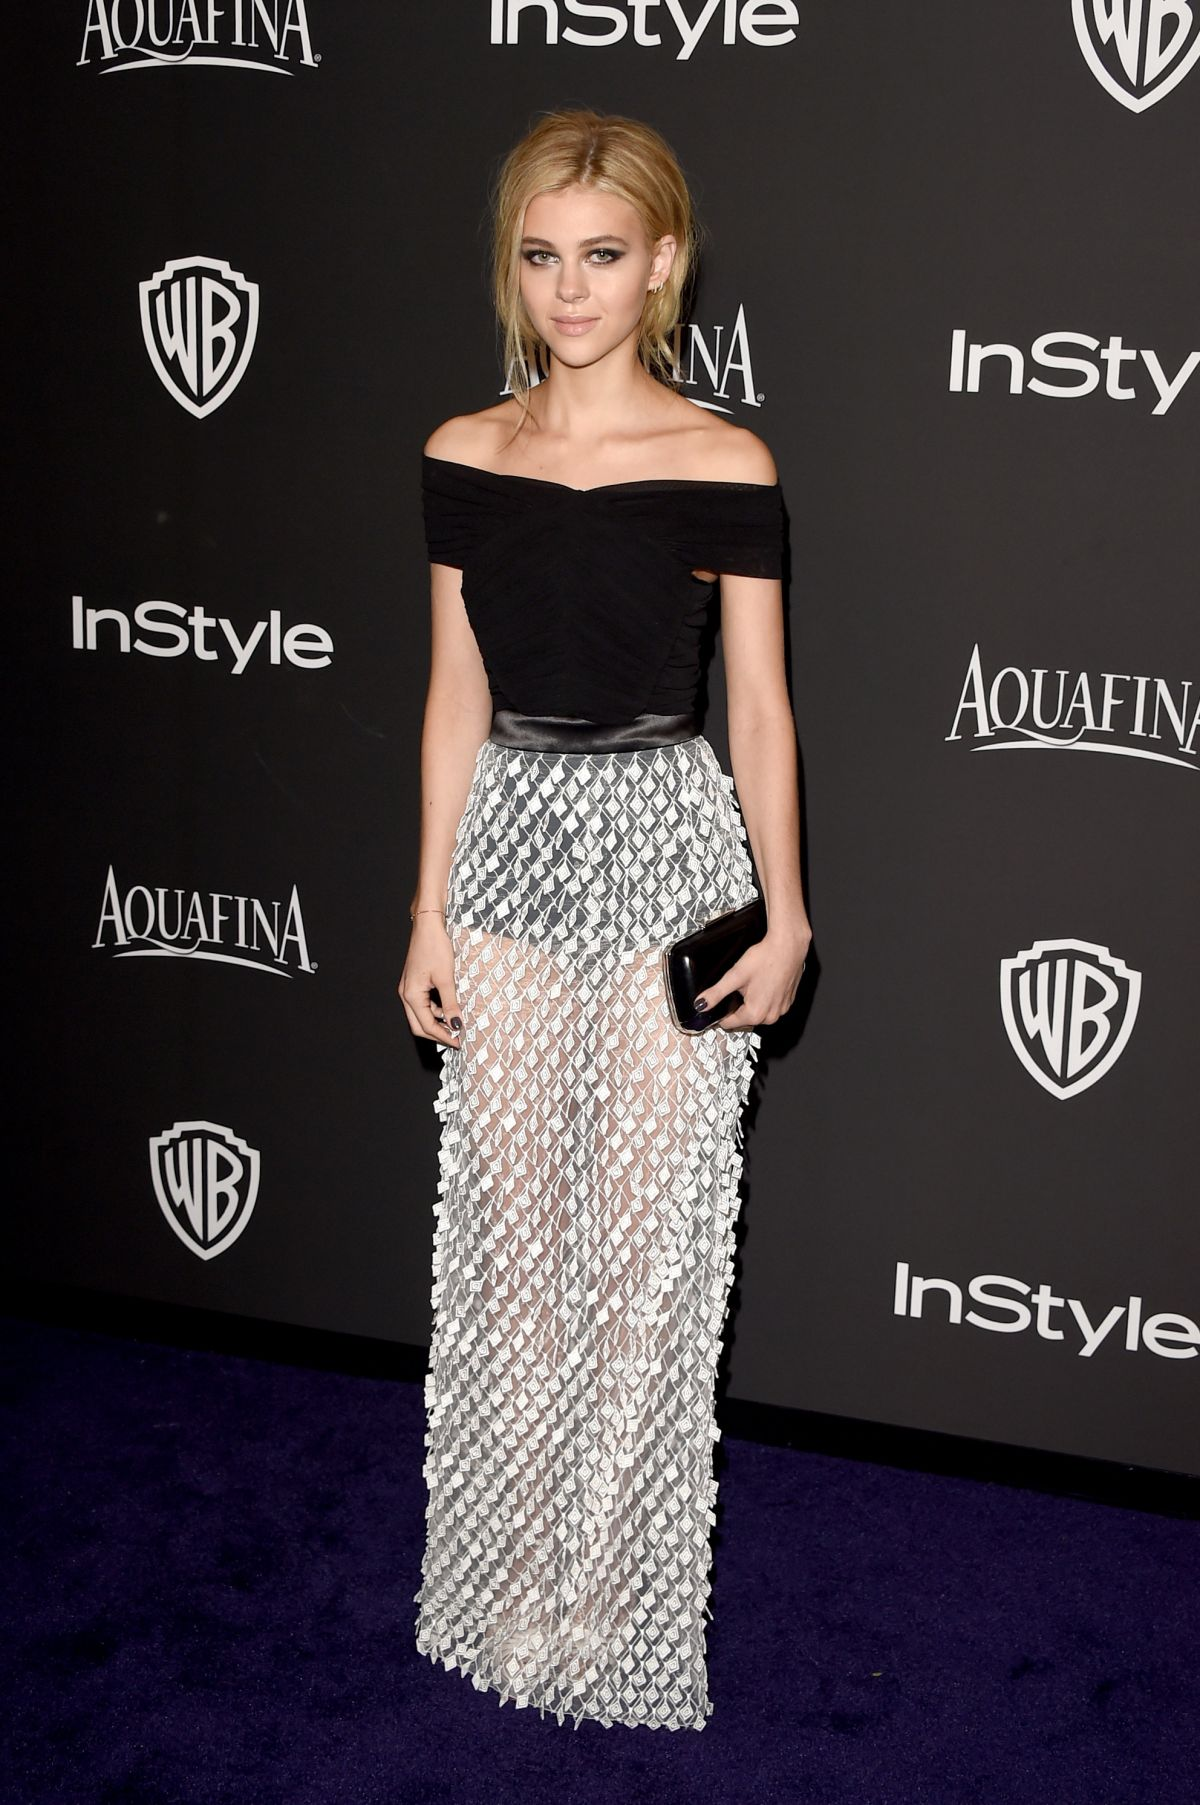 NICOLA PELTZ at Instyle and Warner Bros Golden Globes Party in Beverly Hills